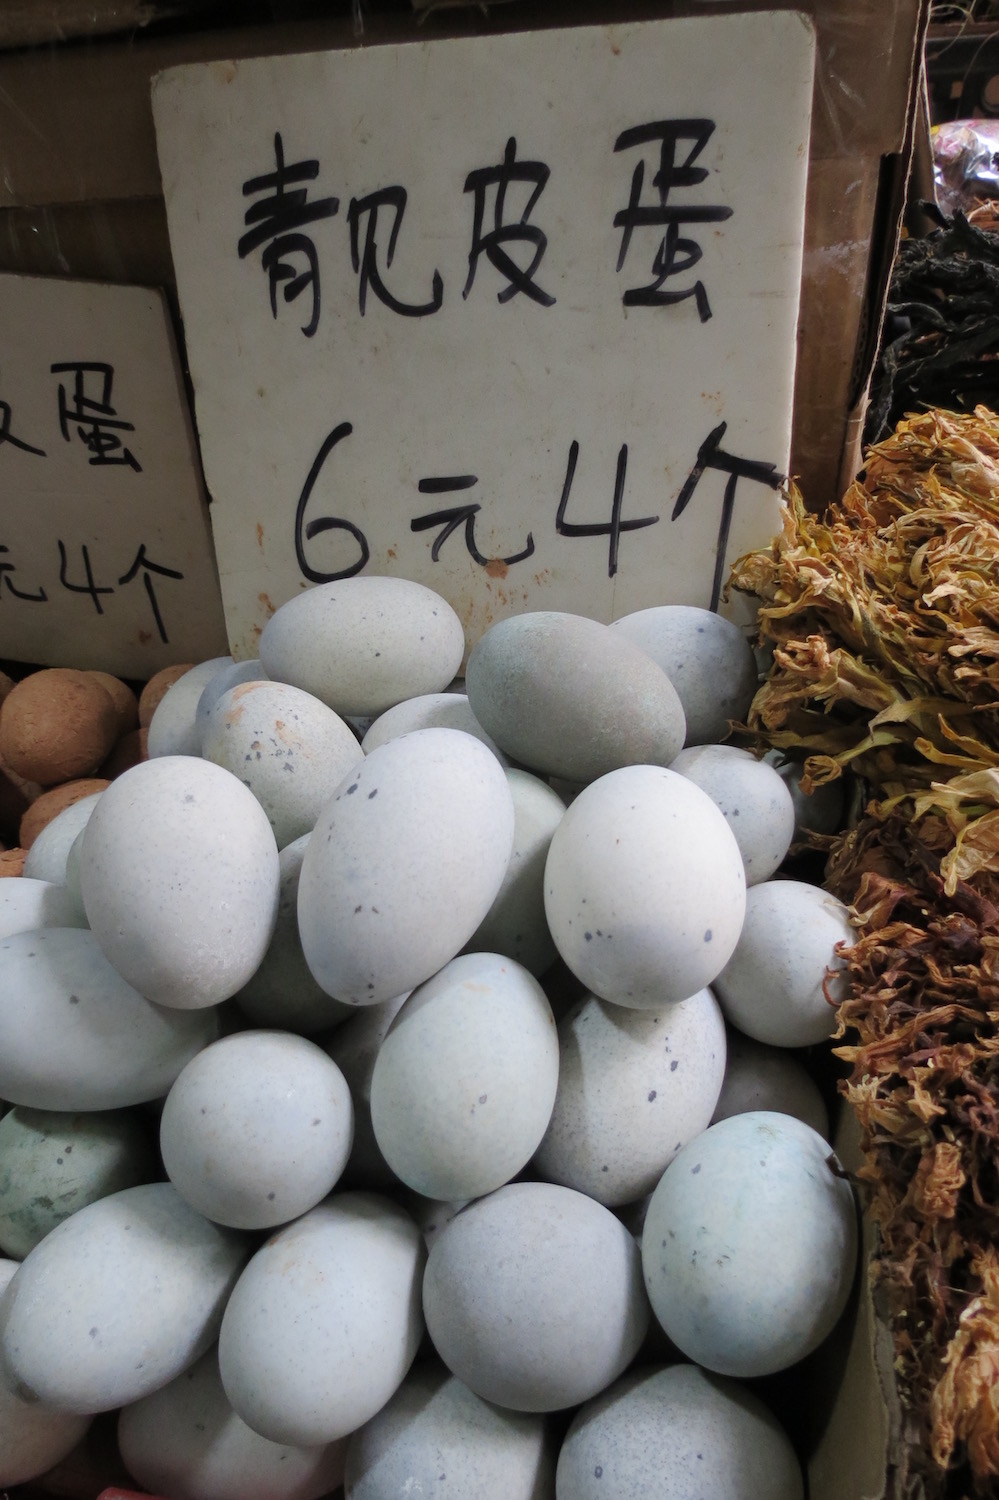 Duck eggs for sale in Guangzhou's Enning Road